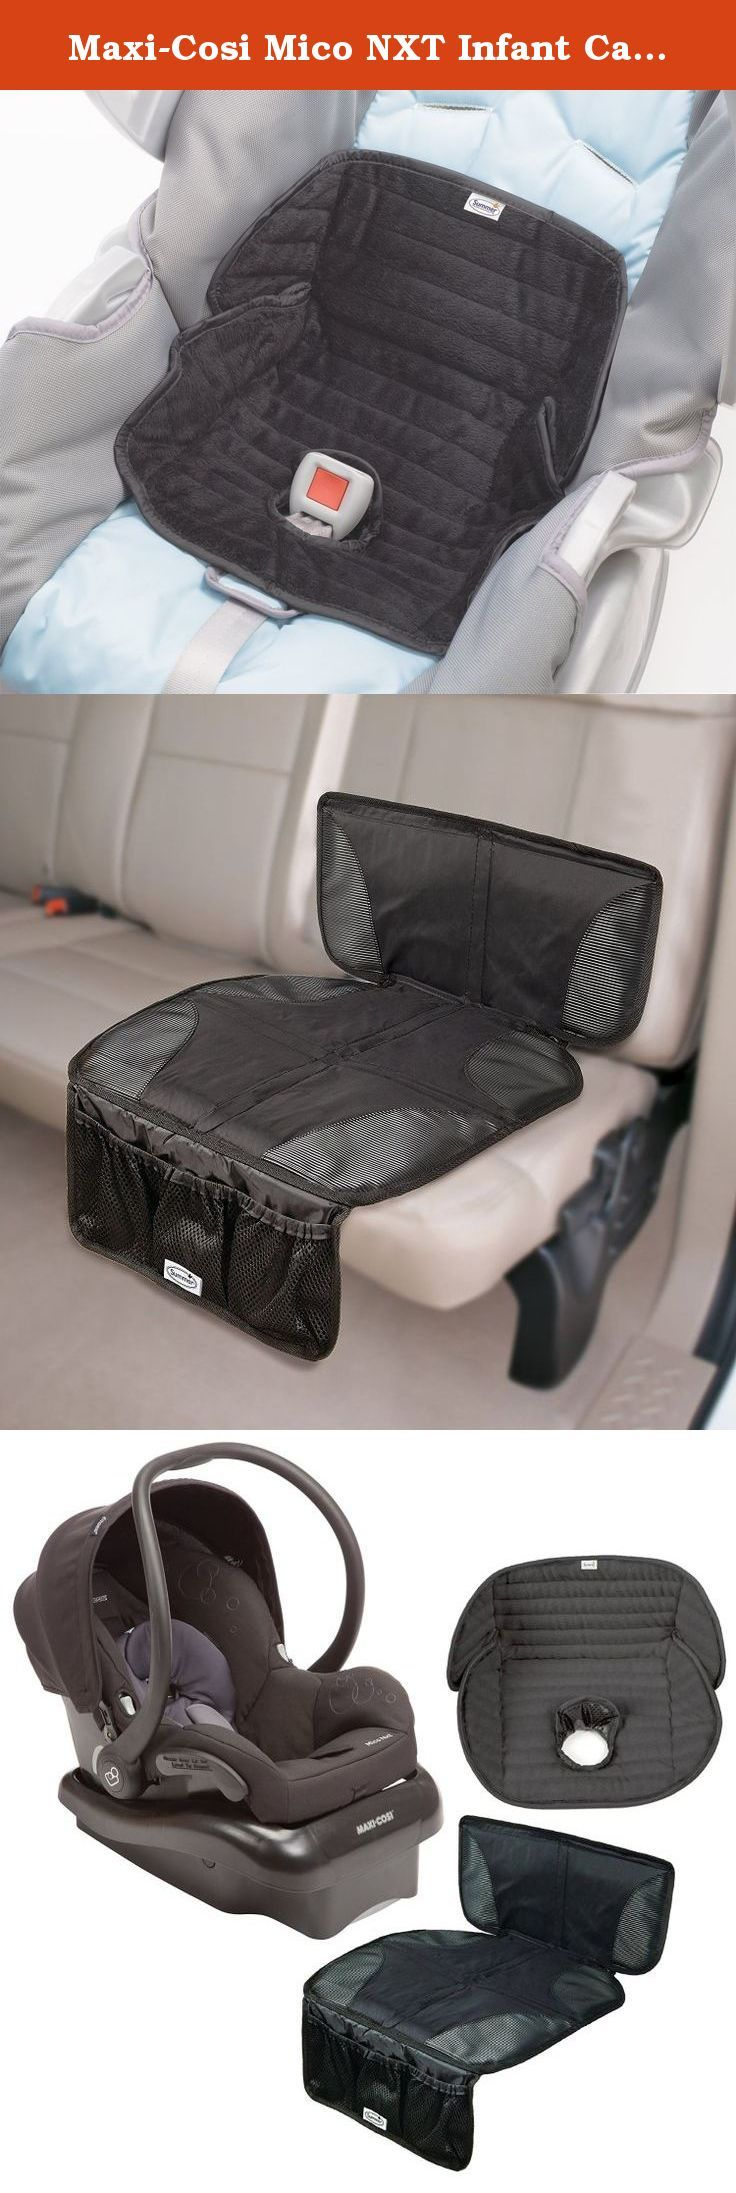 Maxi-Cosi Mico NXT Infant Car Seat with Car Seat Mat & Deluxe Car Seat Protector, Total Black. The Maxi-Cosi Mico NXT takes the classic Mico to the next level. The Maxi-Cosi Mico NXT infant car seat's lightweight design makes transferring from your car to either a Quinny or Maxi-Cosi stroller a breeze. Now features new release from base mechanism and adjustable base. No need to worry about car seat marks with the Car Seat Mat. Protect your seats from being damaged with this durable mat…